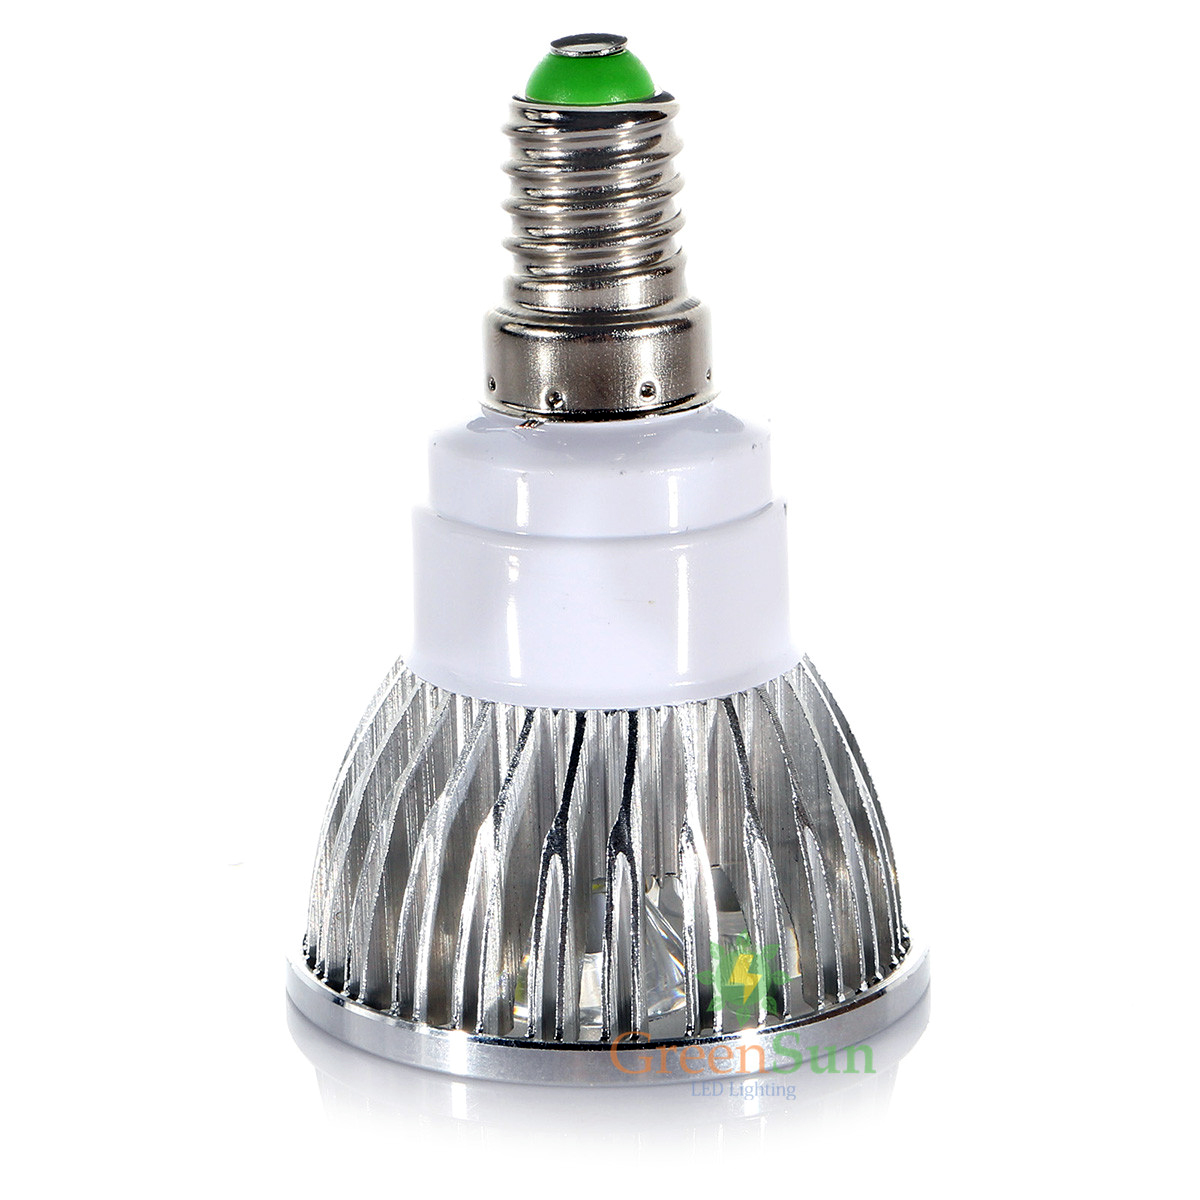 gu10 mr16 e27 e14 9w 12w 15w led ampoule lampe spot light xmas bulb 12v 220v ebay. Black Bedroom Furniture Sets. Home Design Ideas